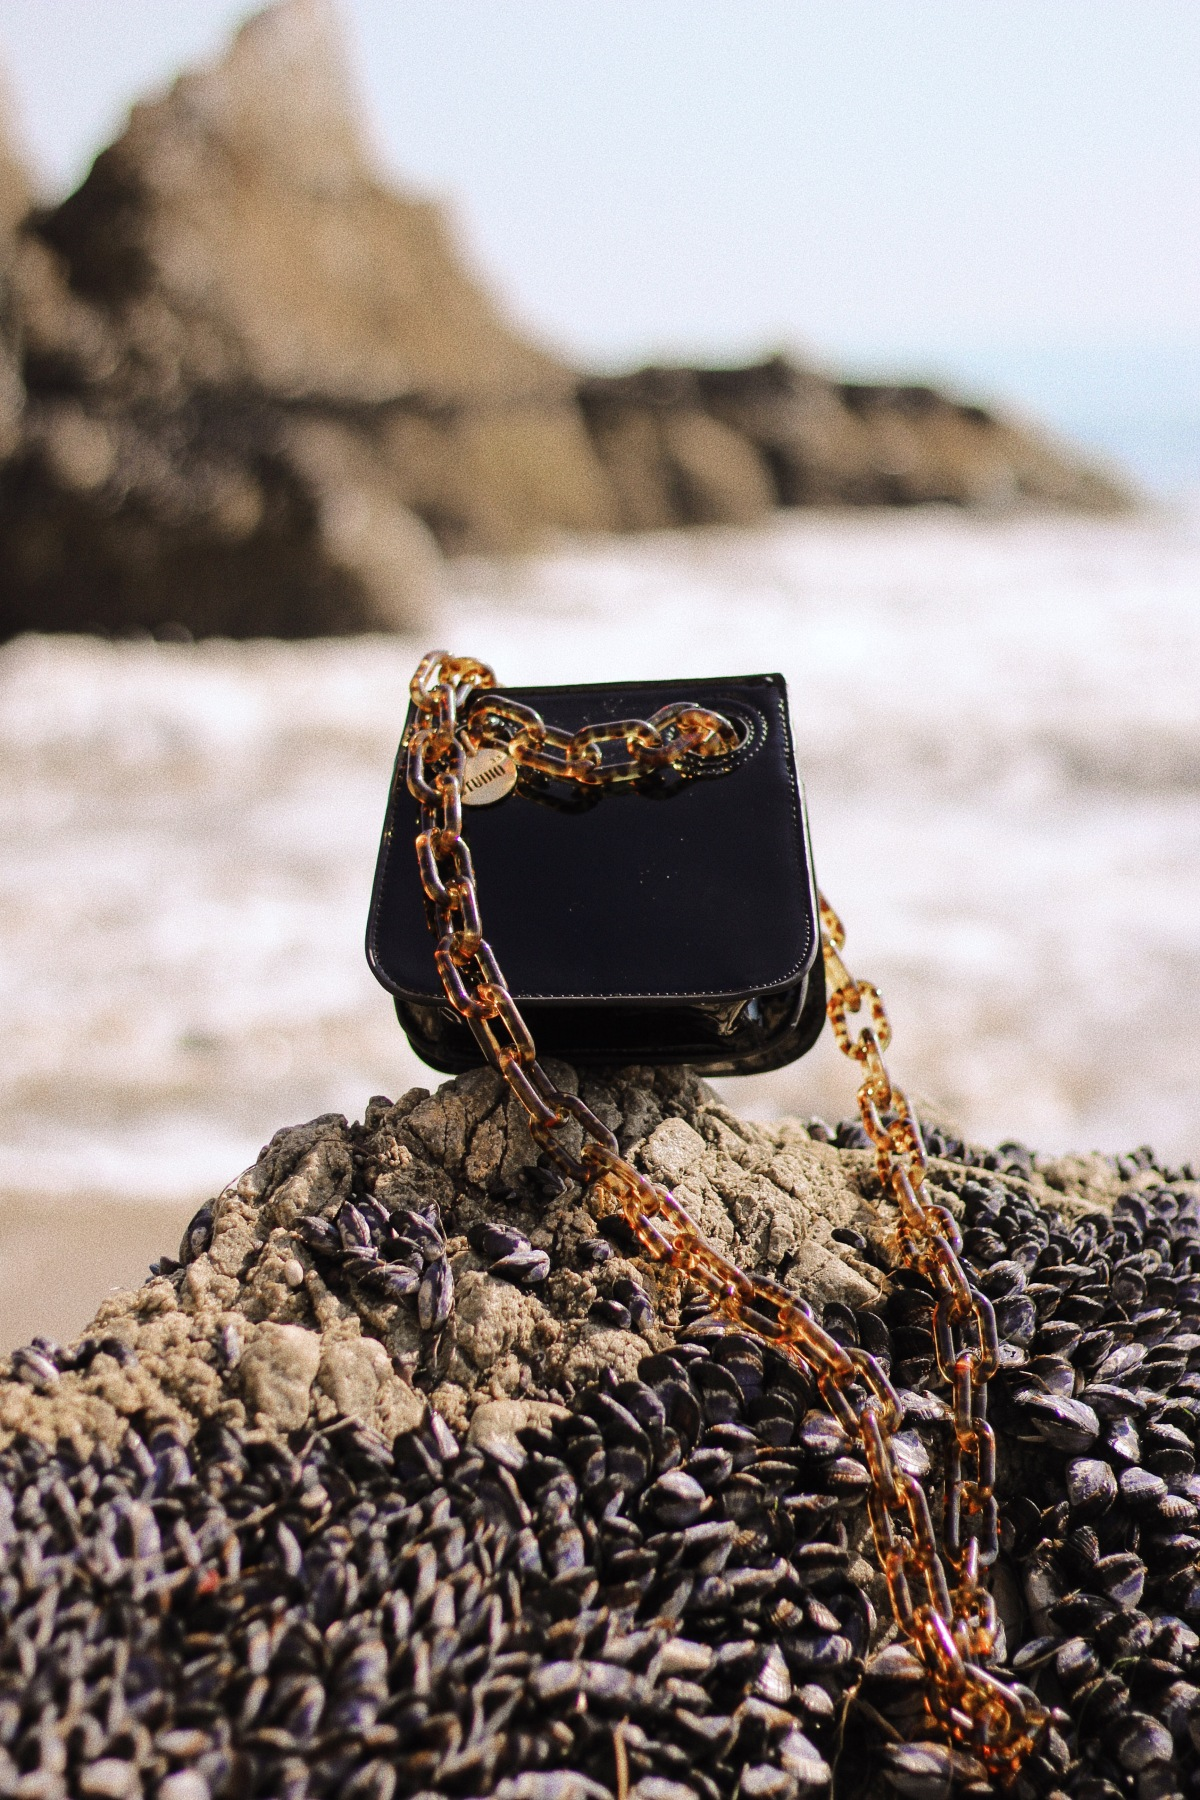 House of Want purse, accessories, El Matador Beach, affordable luxury, purse editorial, accessories editorial, beach photography